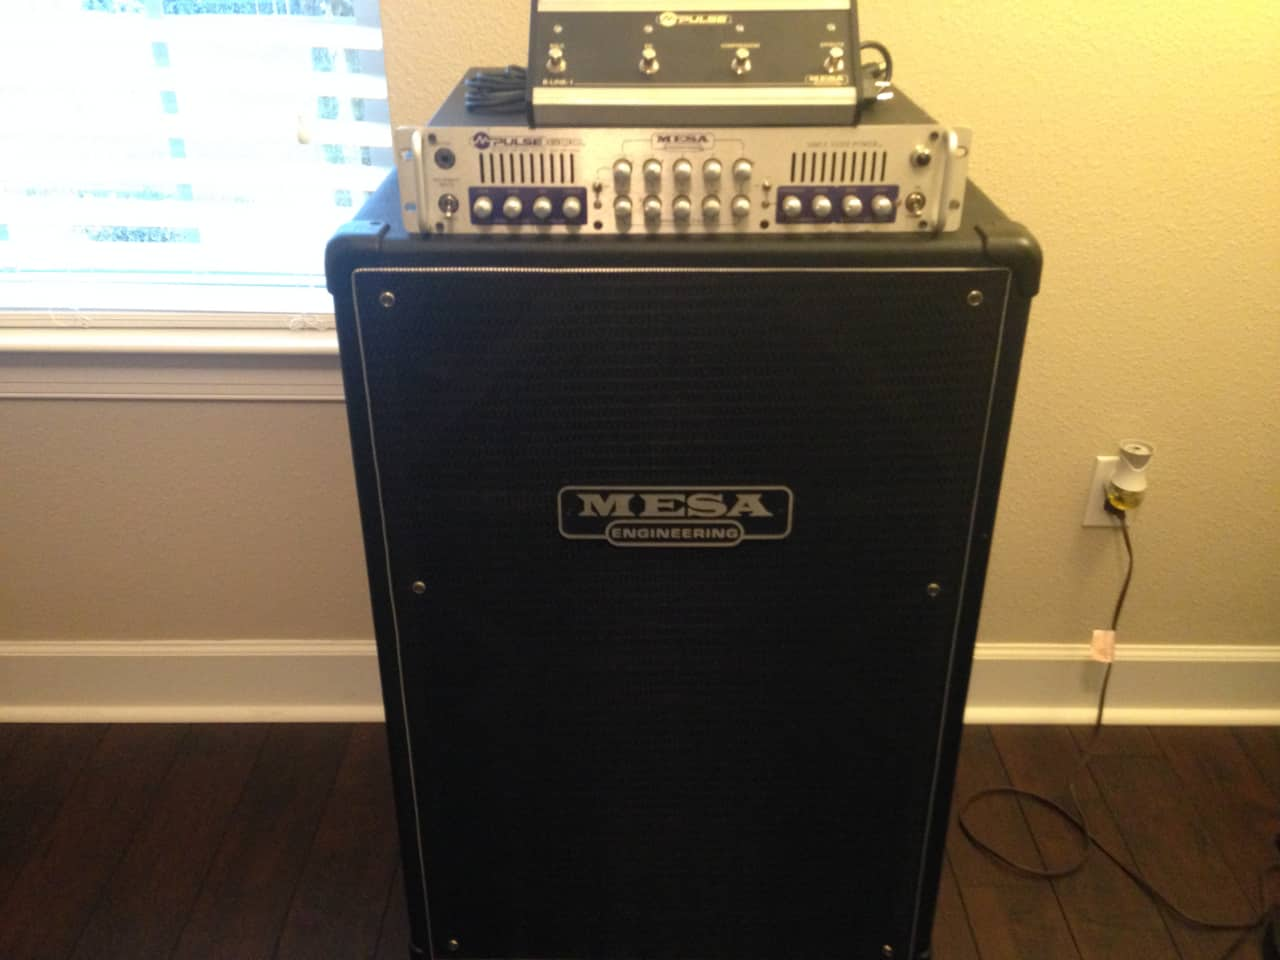 Mesa Boogie 412 Cabinet Wiring Mail Engineering Schematics Cab Vintage 215 Bass M Pulse 600 W Foot Switch Reverb